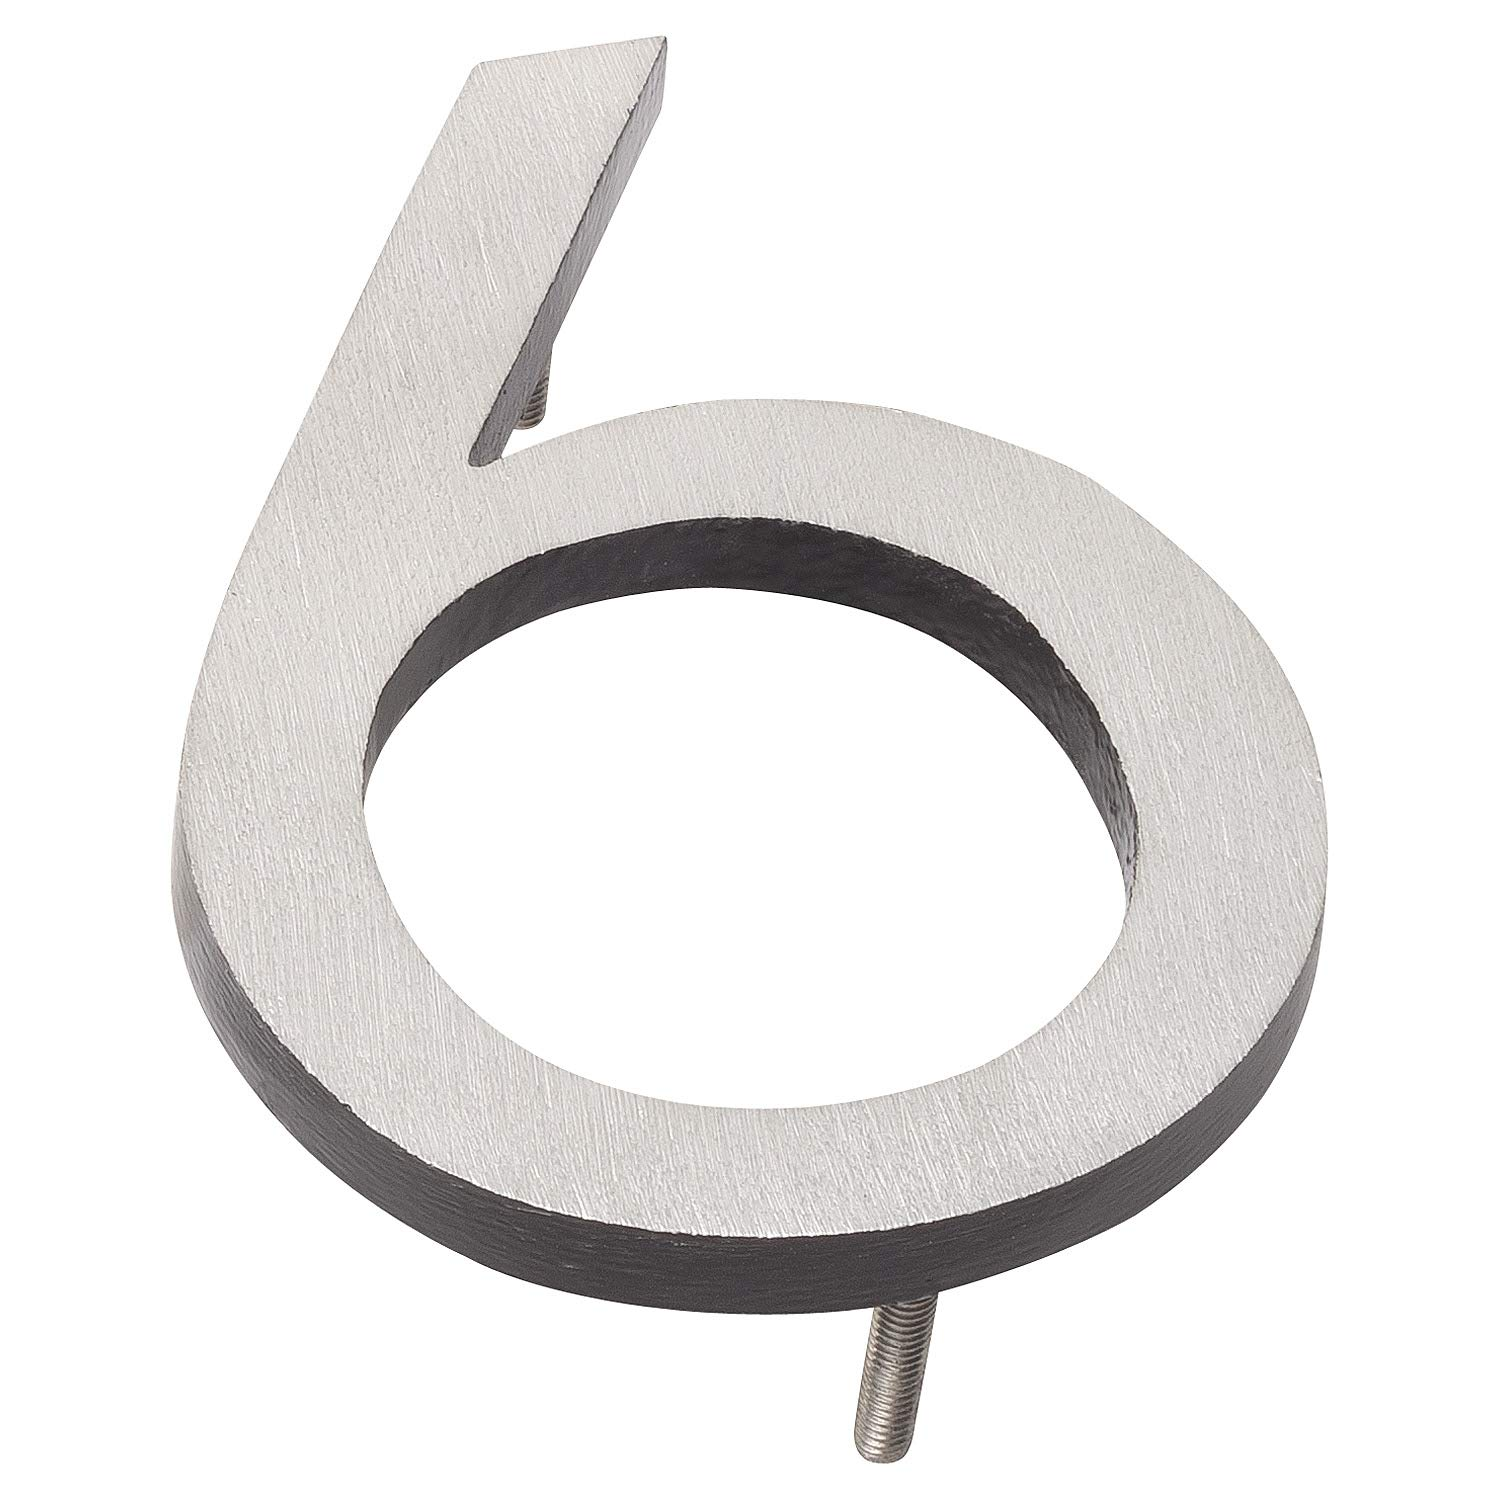 Montague Metal Products MHN-10-6-F-BK2 Floating House Number, 10 inches x 7.25 inches x 0.375 inches Black Two Tone